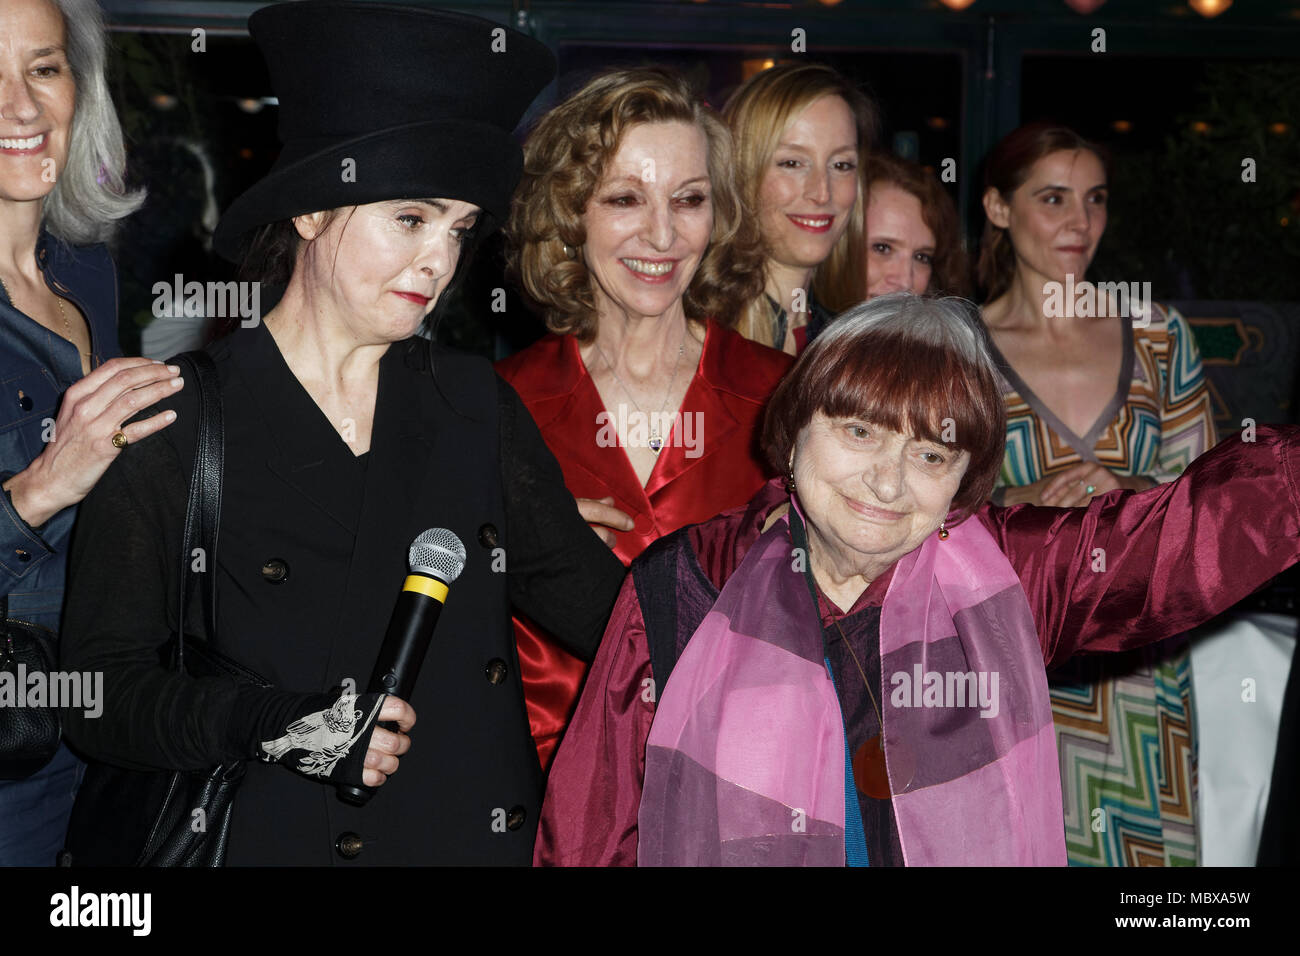 Paris, France. 11th April, 2018. Agnès Varda, elected woman of the year of the Closerie des lilas 2018 attend 11th 'La Closerie Des Lilas' Literary Awards 2018 at La Closerie des Lilas, Paris, France. Credit: Bernard Menigault/Alamy Live News - Stock Image